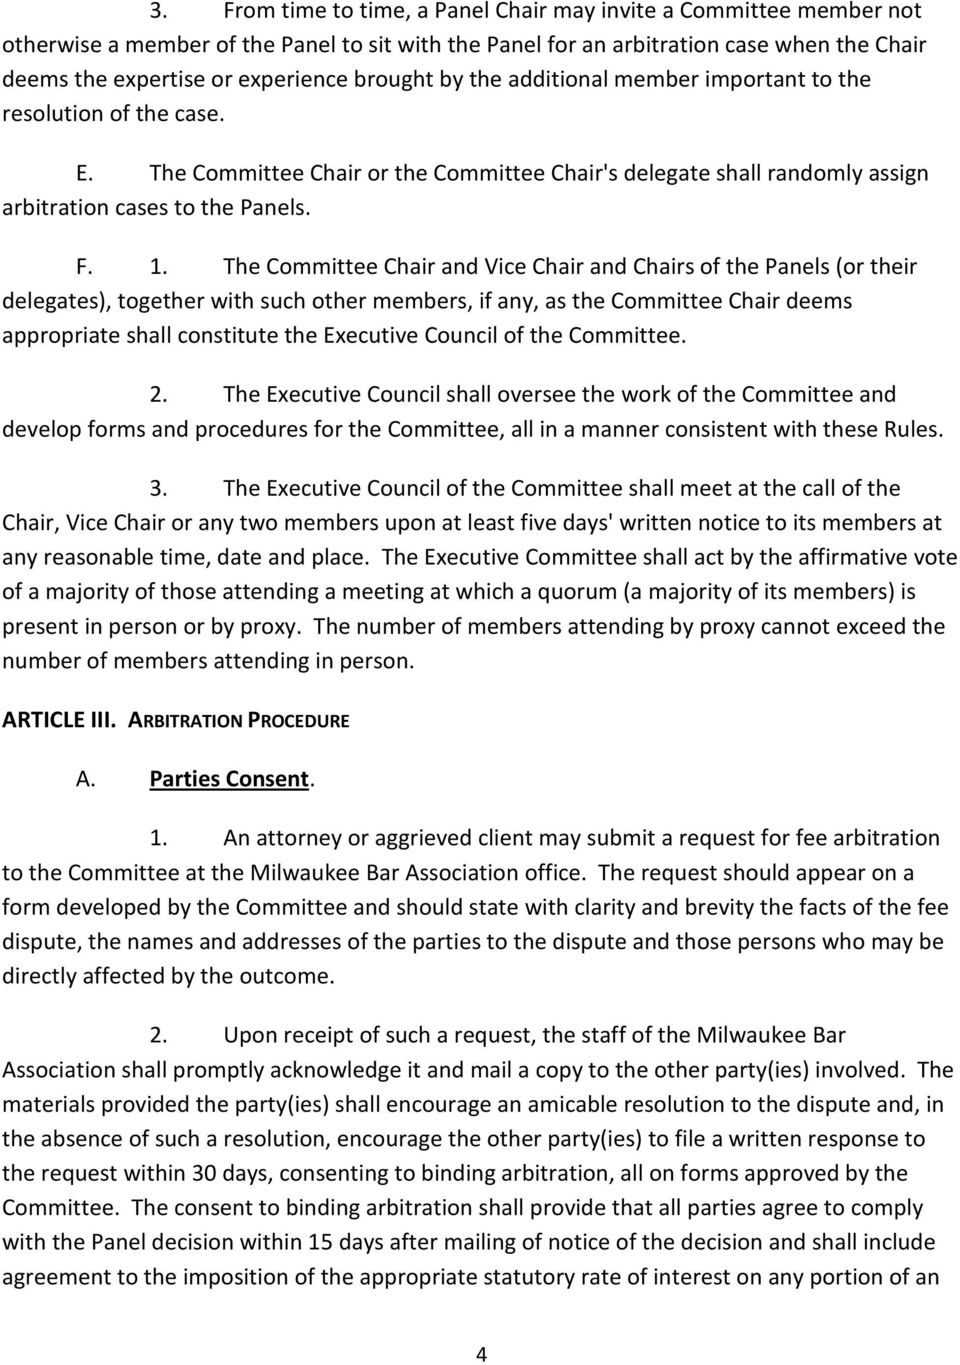 The Committee Chair and Vice Chair and Chairs of the Panels (or their delegates), together with such other members, if any, as the Committee Chair deems appropriate shall constitute the Executive